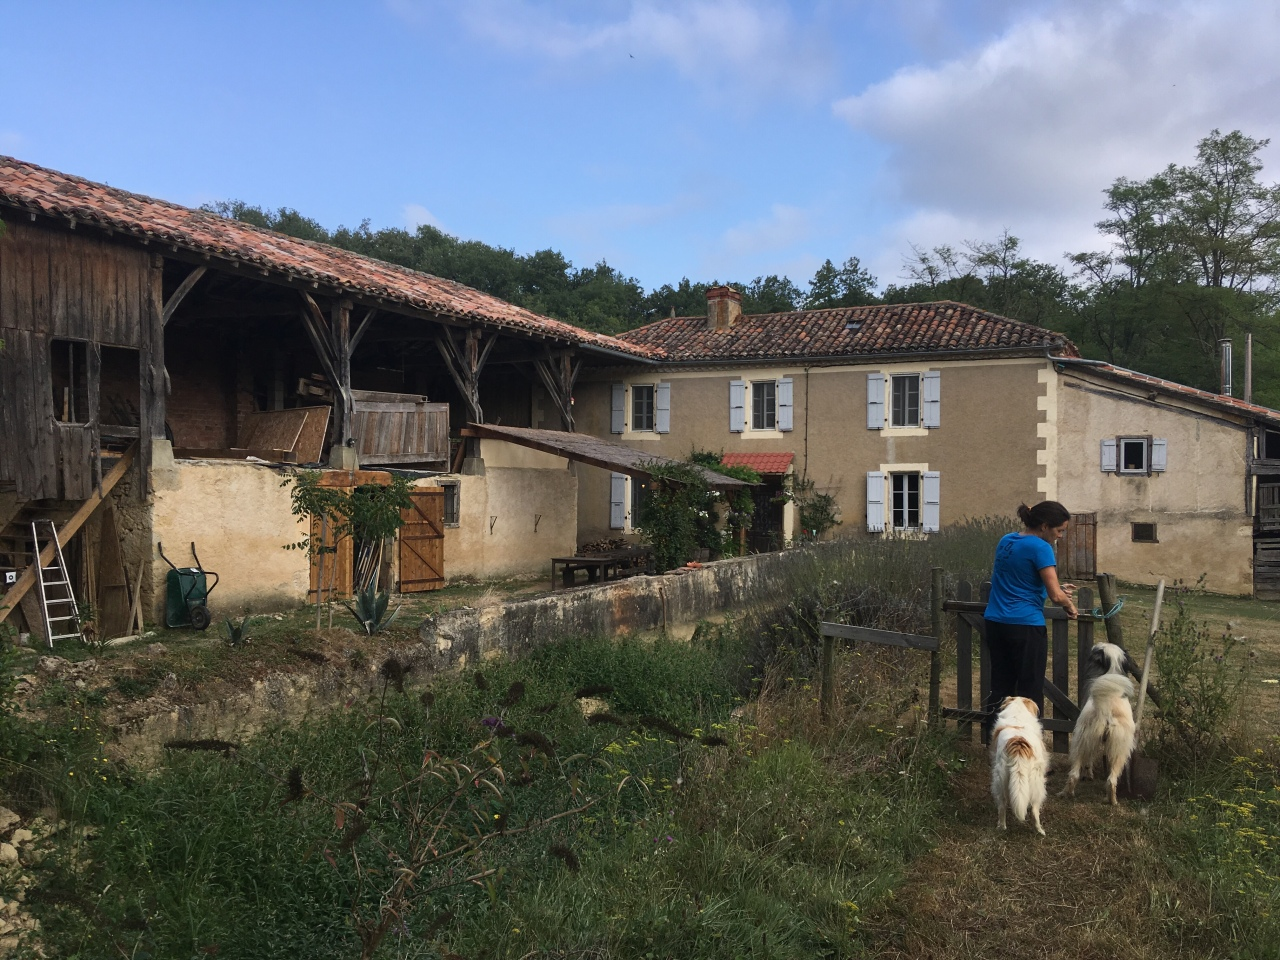 A little slice of animal husbandry heaven in the south of France, by Wayne